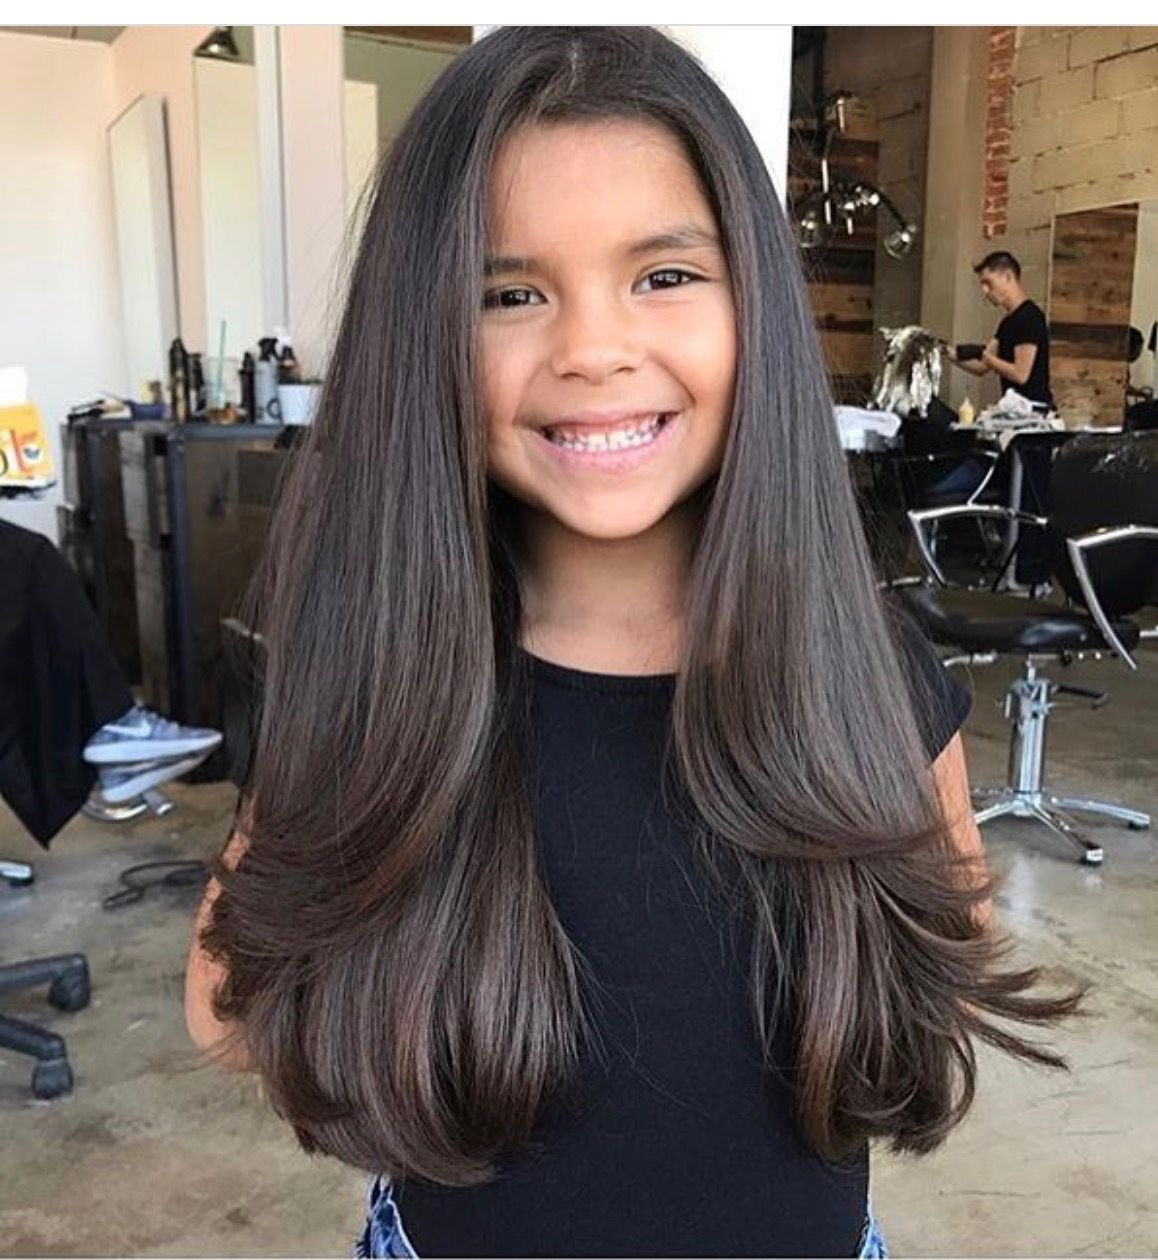 50 Cute Haircuts For Girls To Put You On Center Stage Little Girl Haircuts Girl Haircuts Little Girl Hairstyles